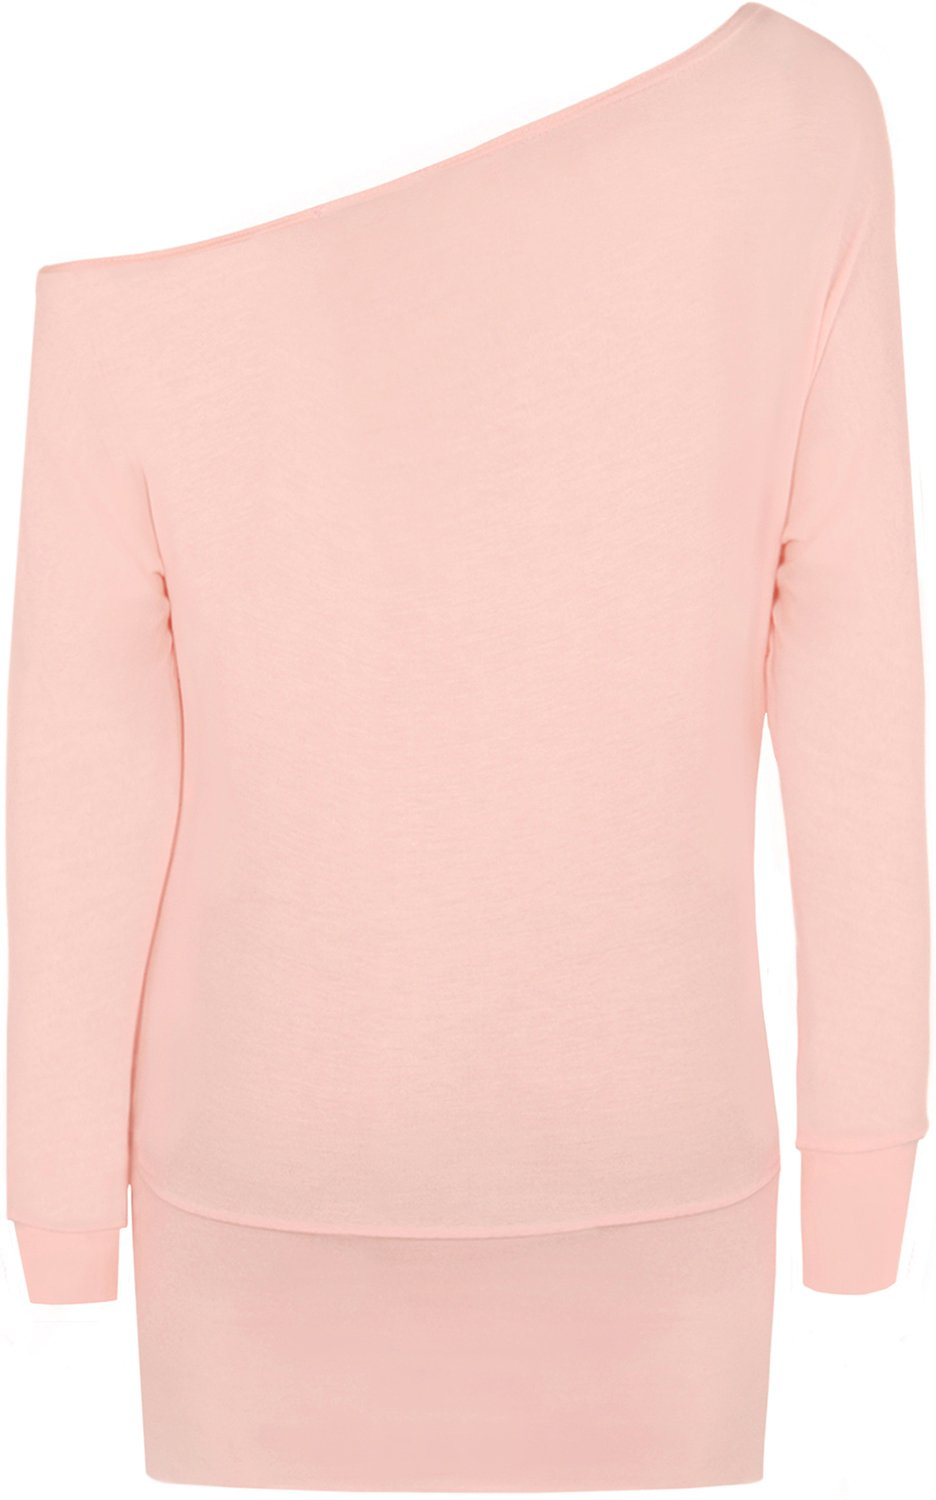 WearAll Women's Off-Shoulder Batwing Top - Pink - US 8-10 (UK 12-14) by WearAll (Image #2)